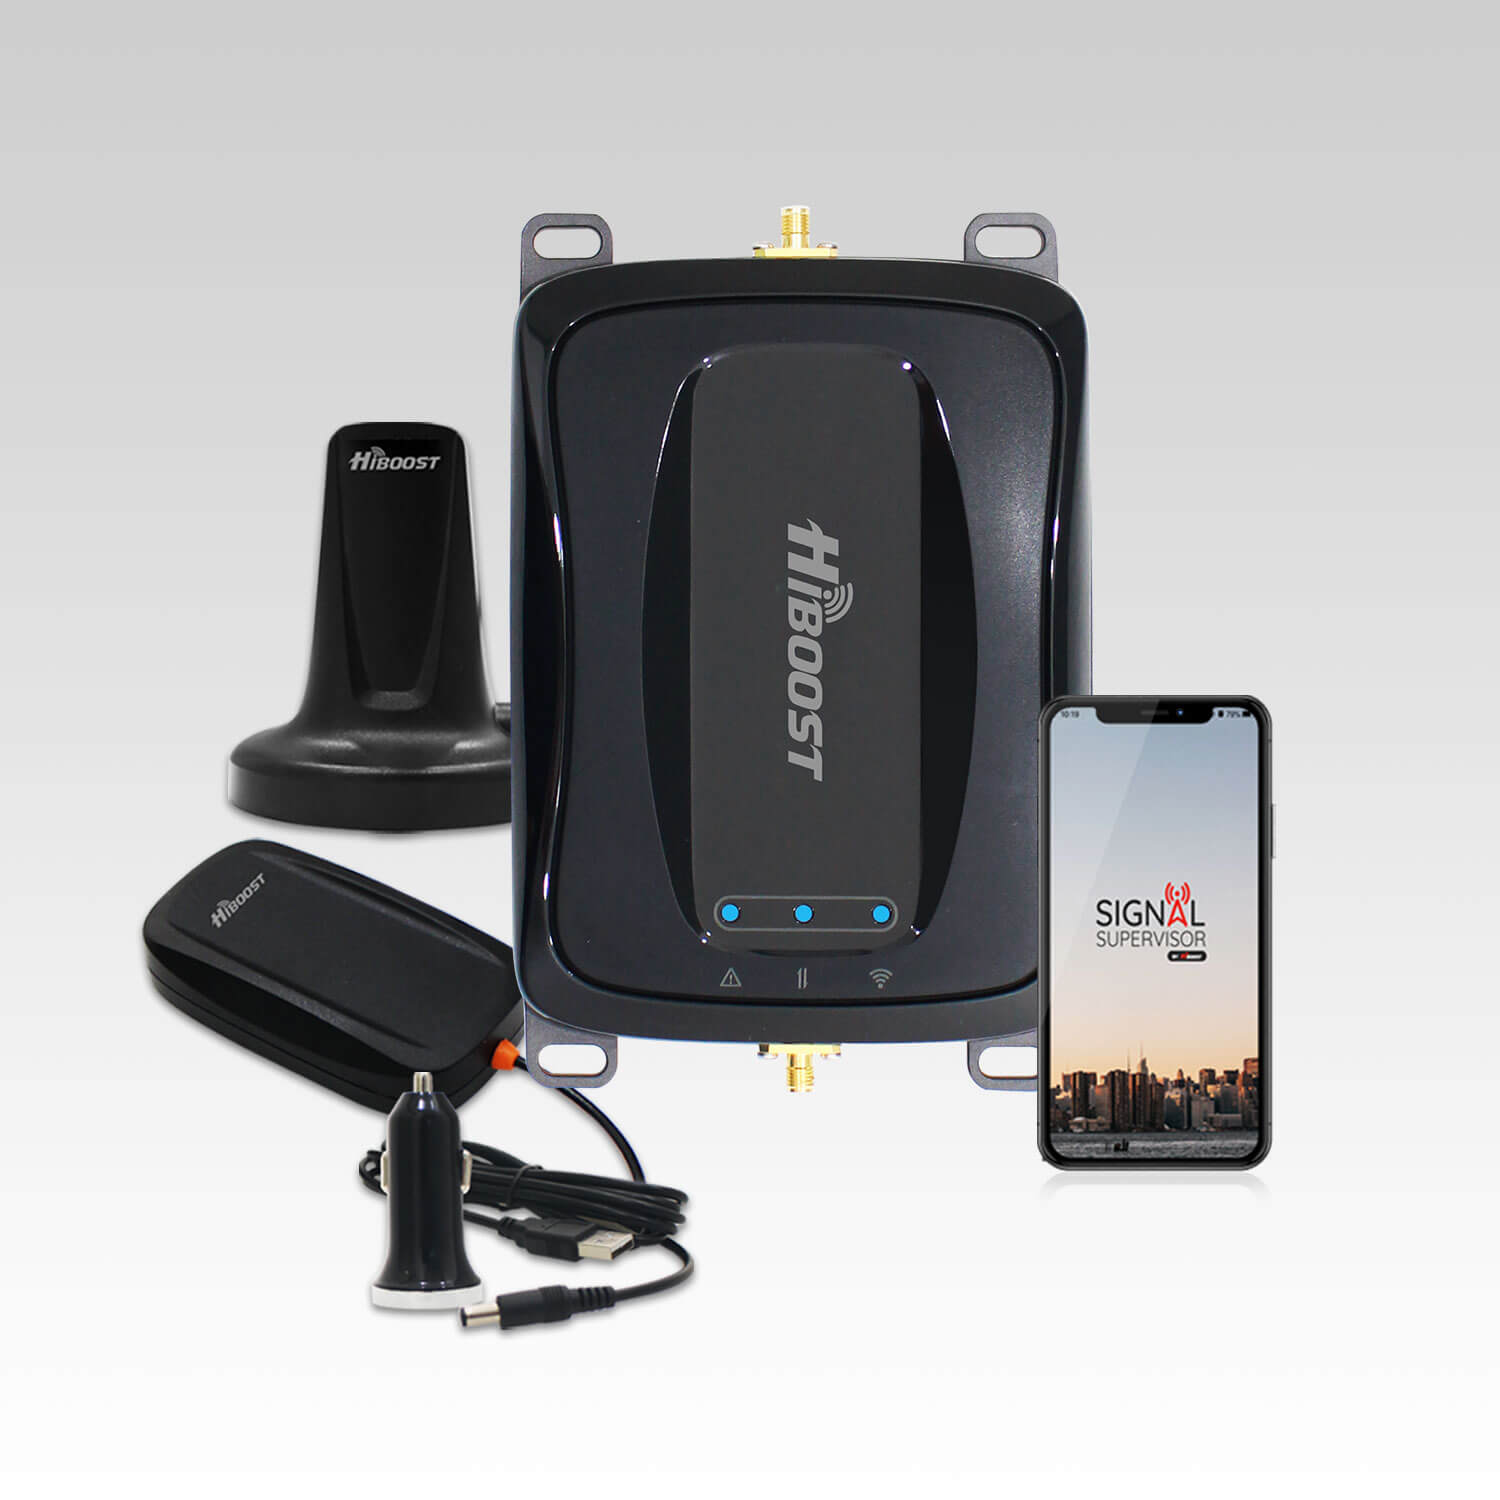 Travel-4G-2.0-Car-Signal-Booster-9